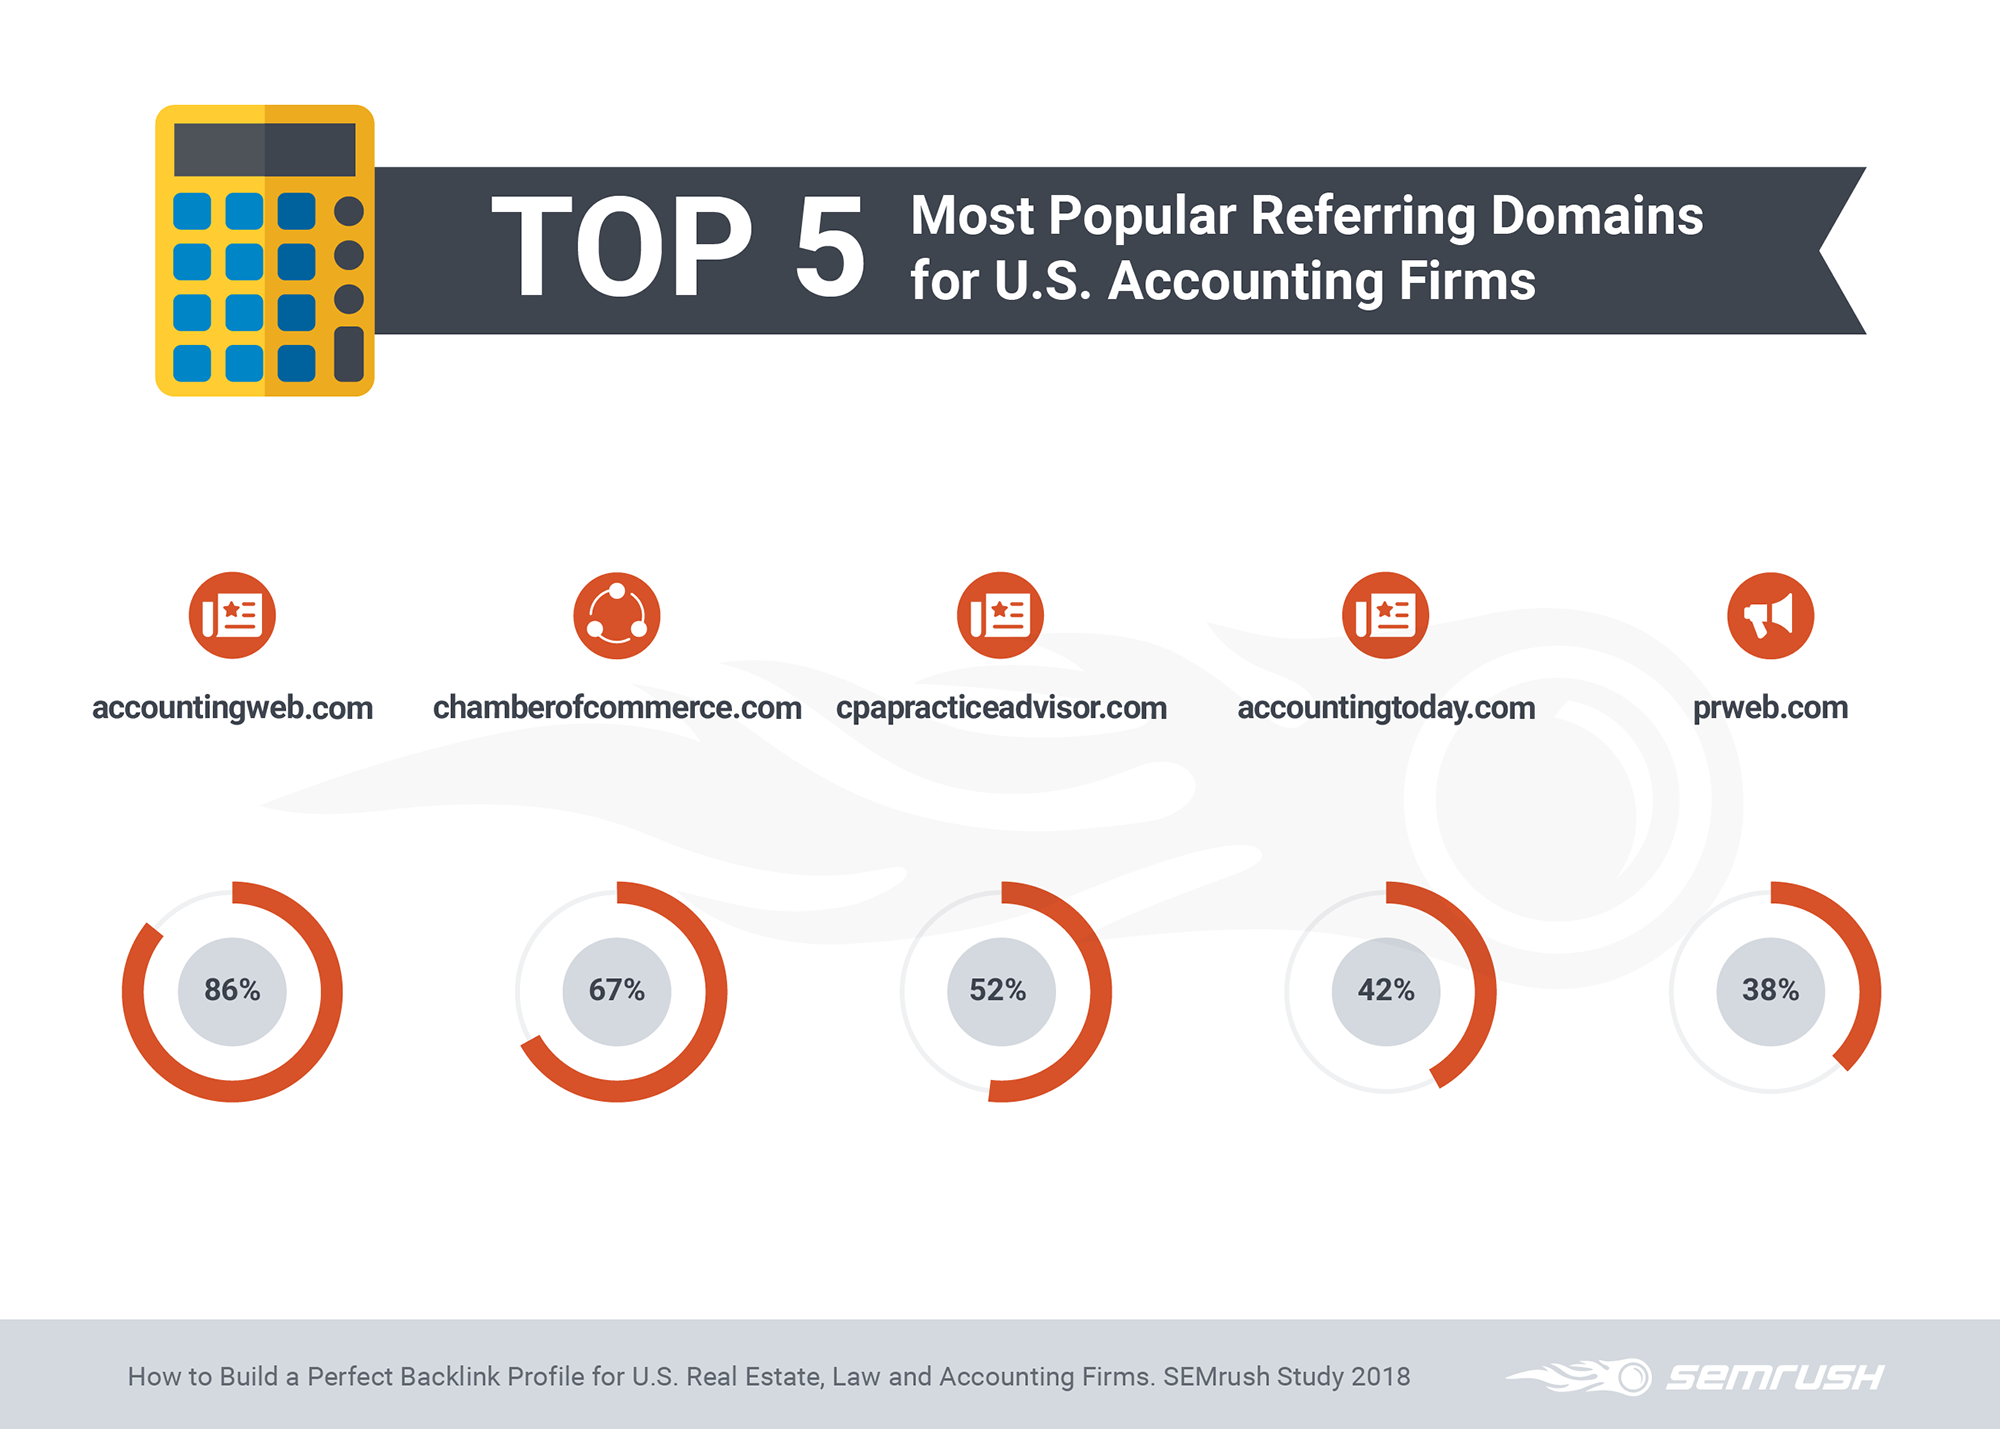 Top 5 Most Popular Referring Domains for Accounting Firms